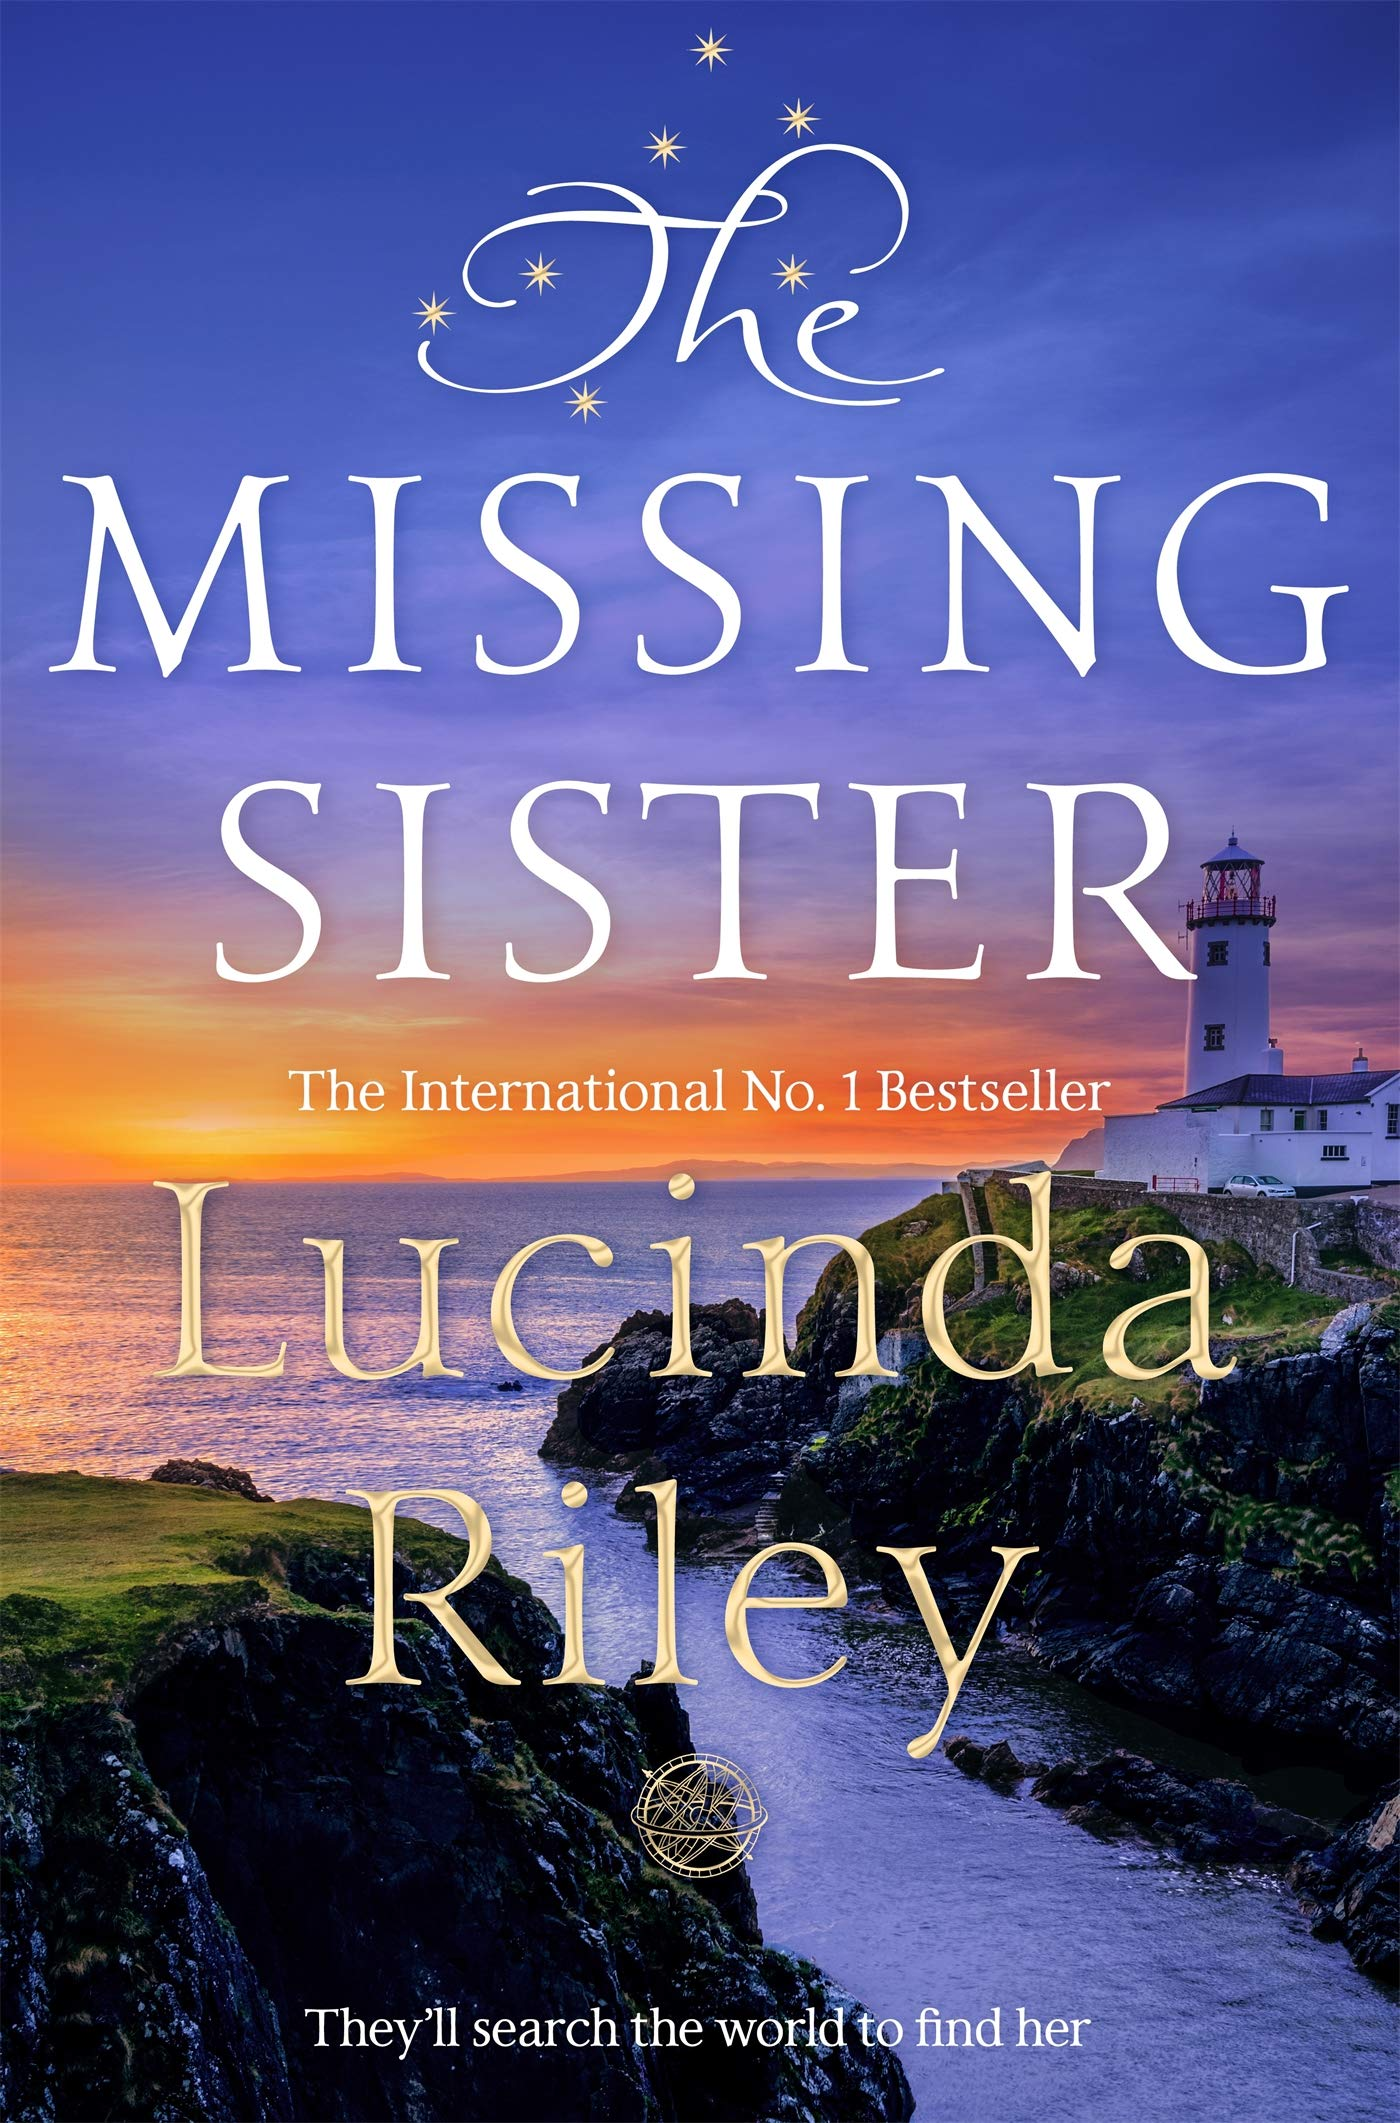 Cover image of The Missing Sister by Lucinda Riley